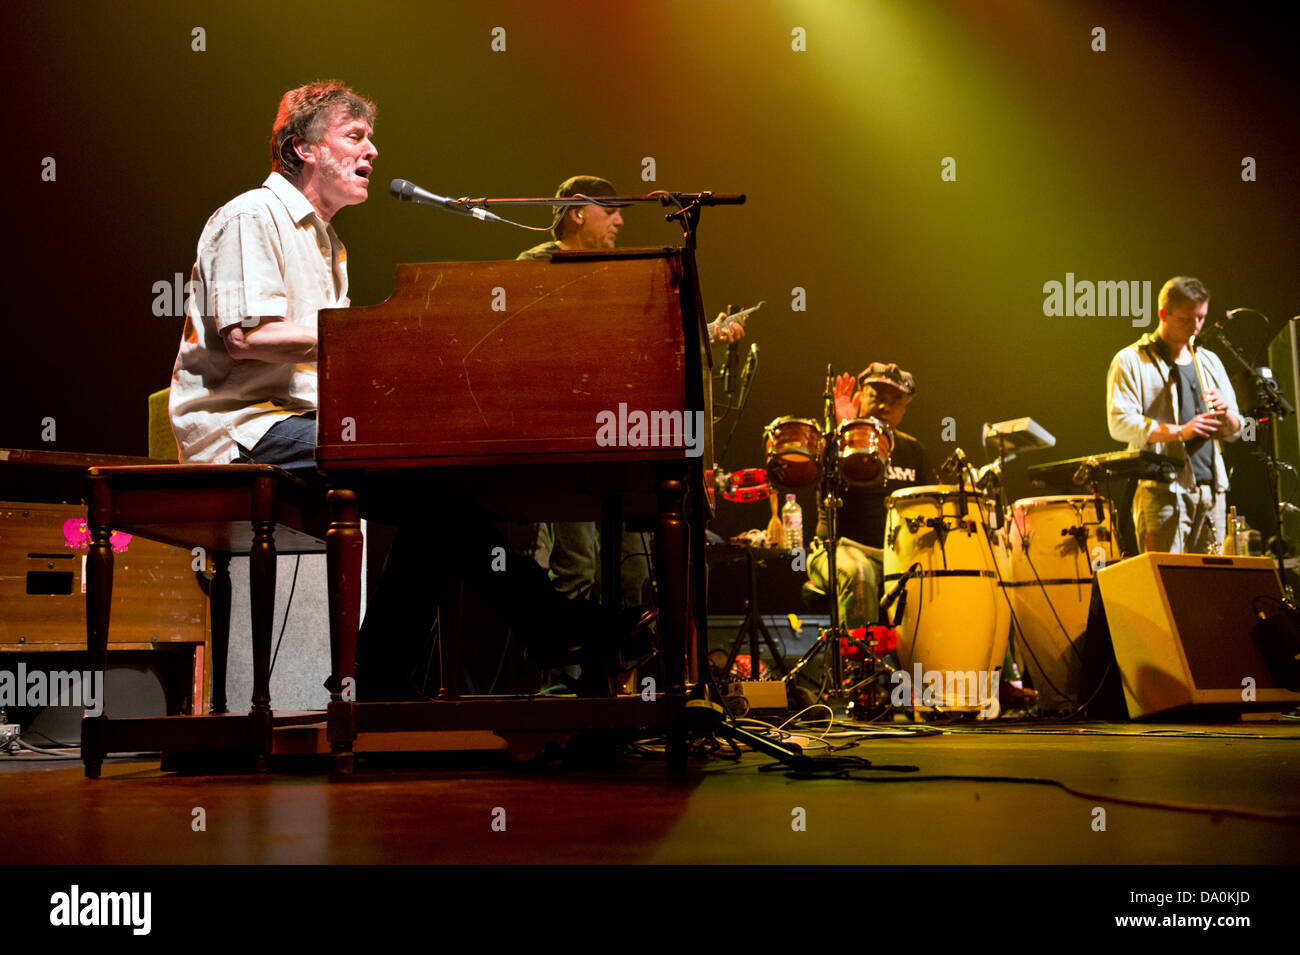 Steve Winwood and his band in concert at The Lowry, Salford, UK, 24 June 2013. - Stock Image